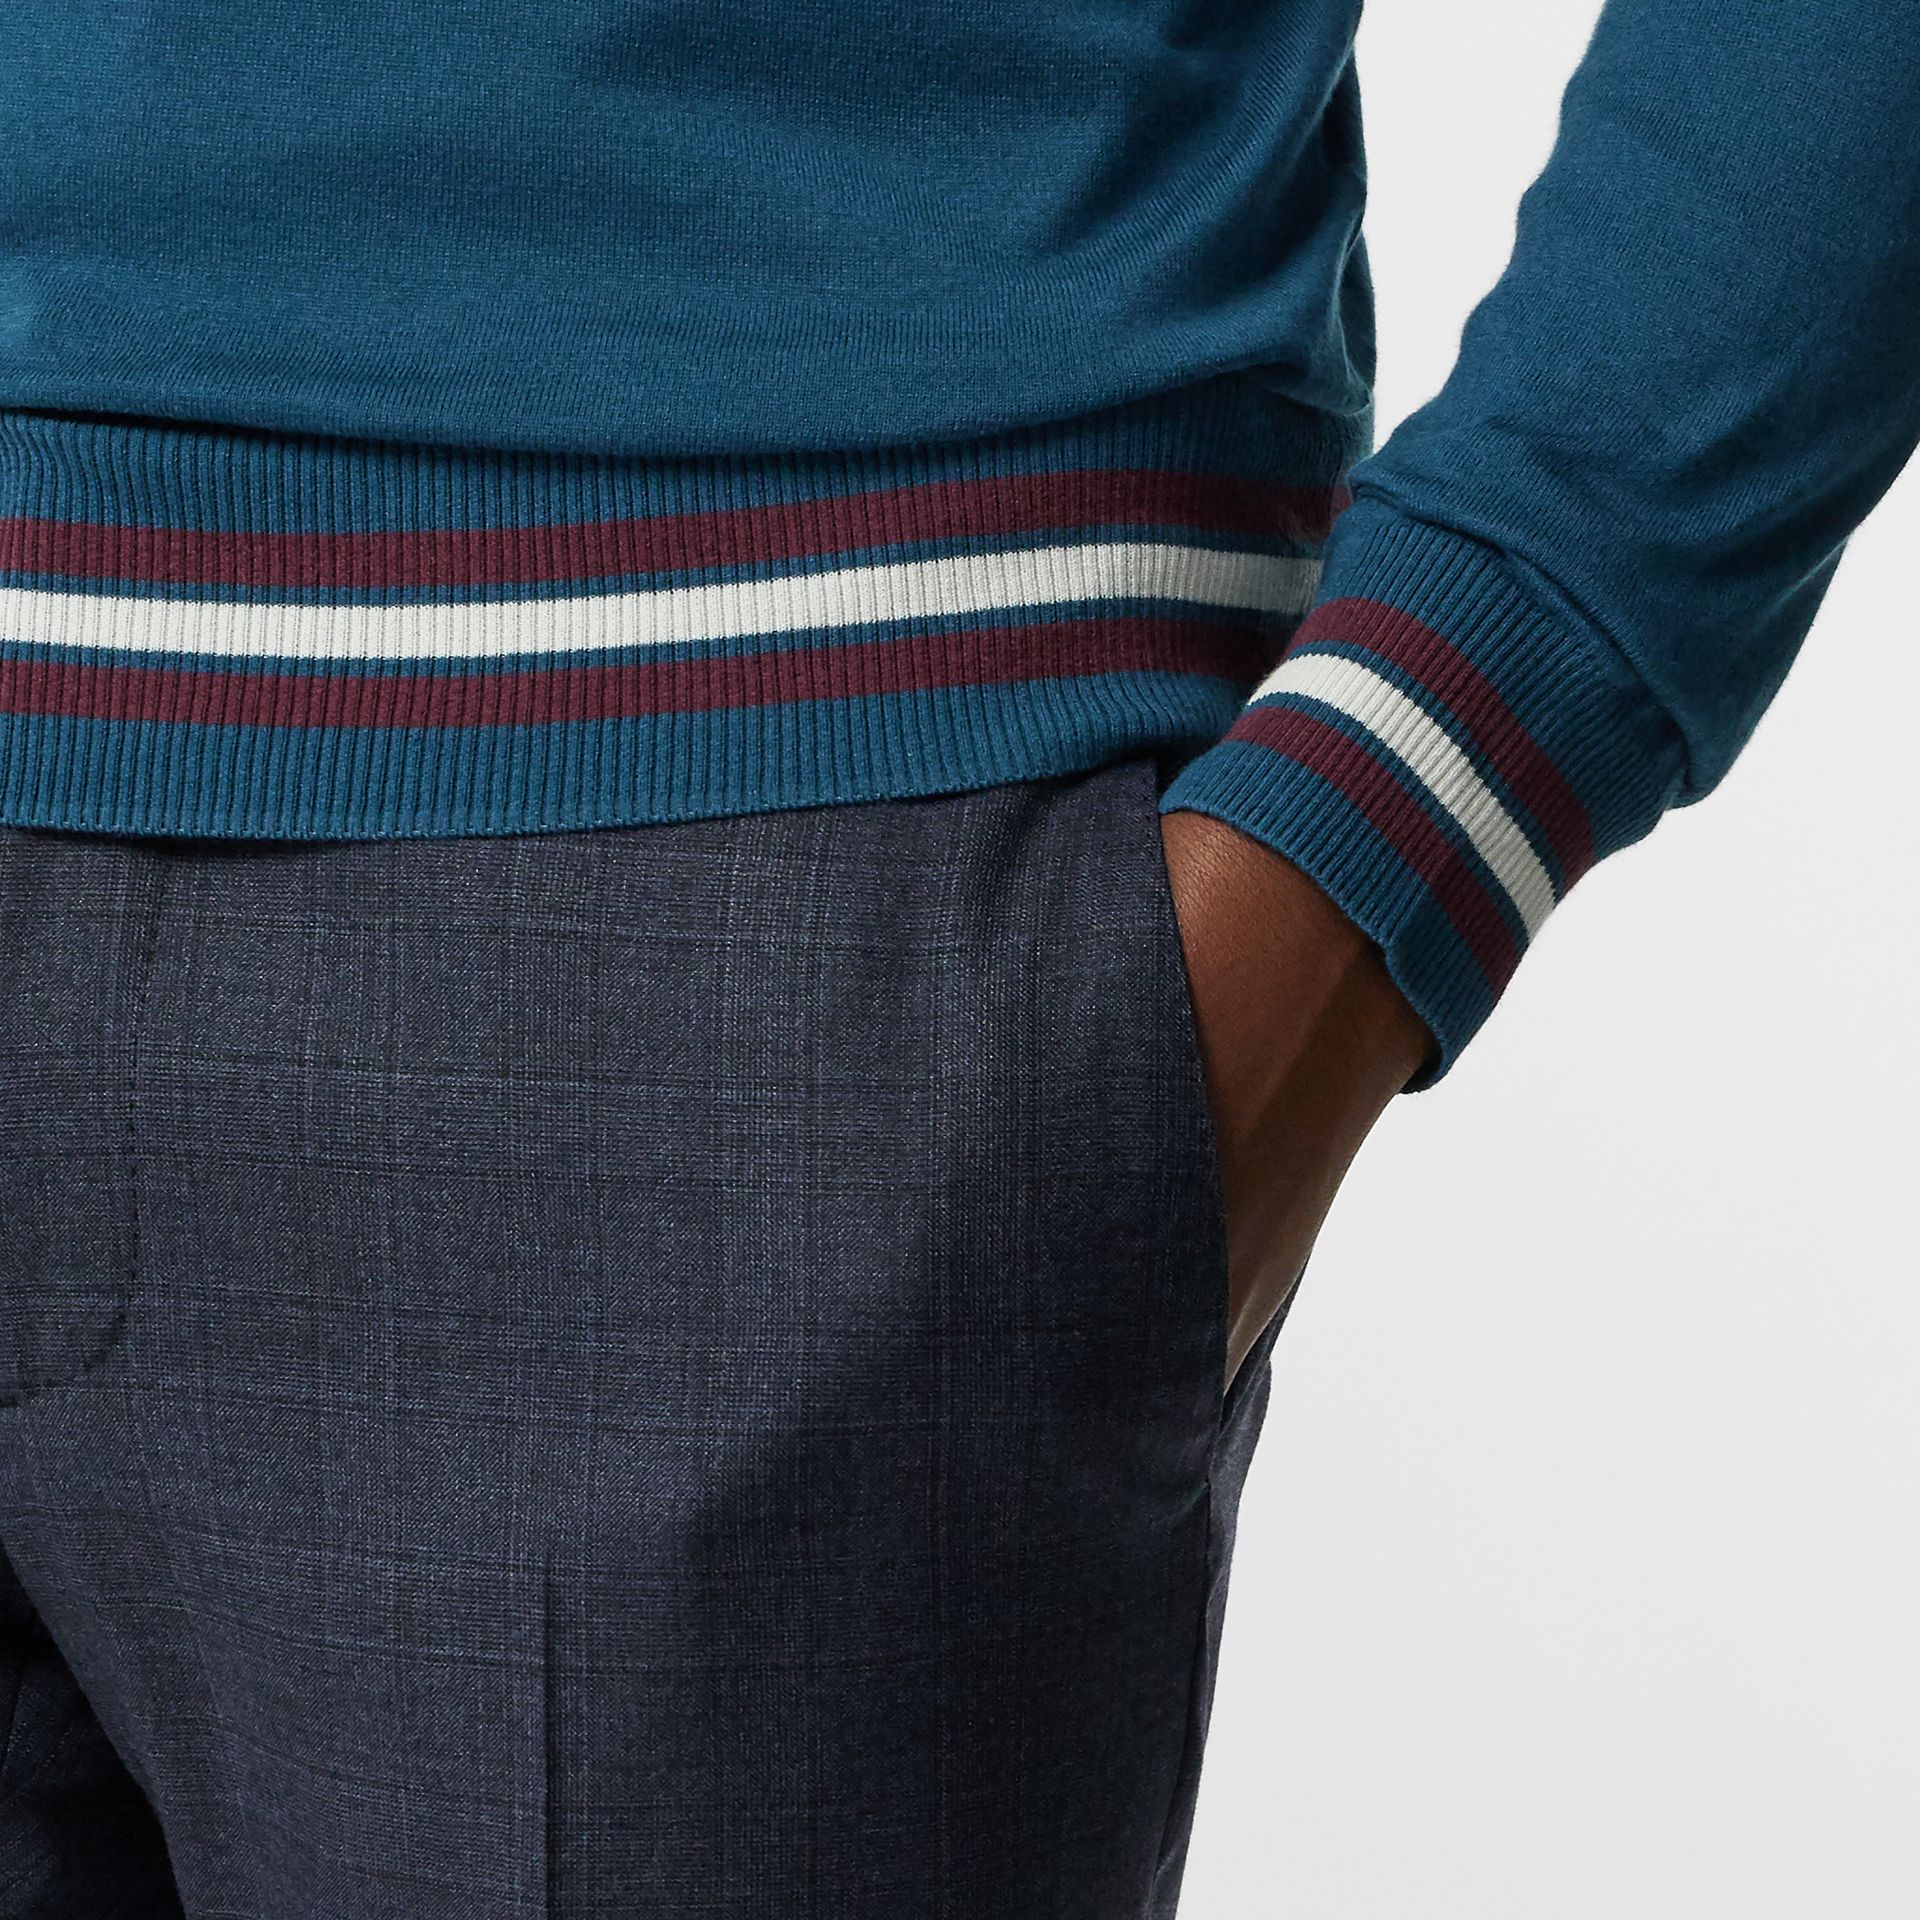 Embroidered Crest Cotton Silk Sweater in Dark Teal Blue - Men | Burberry - gallery image 4